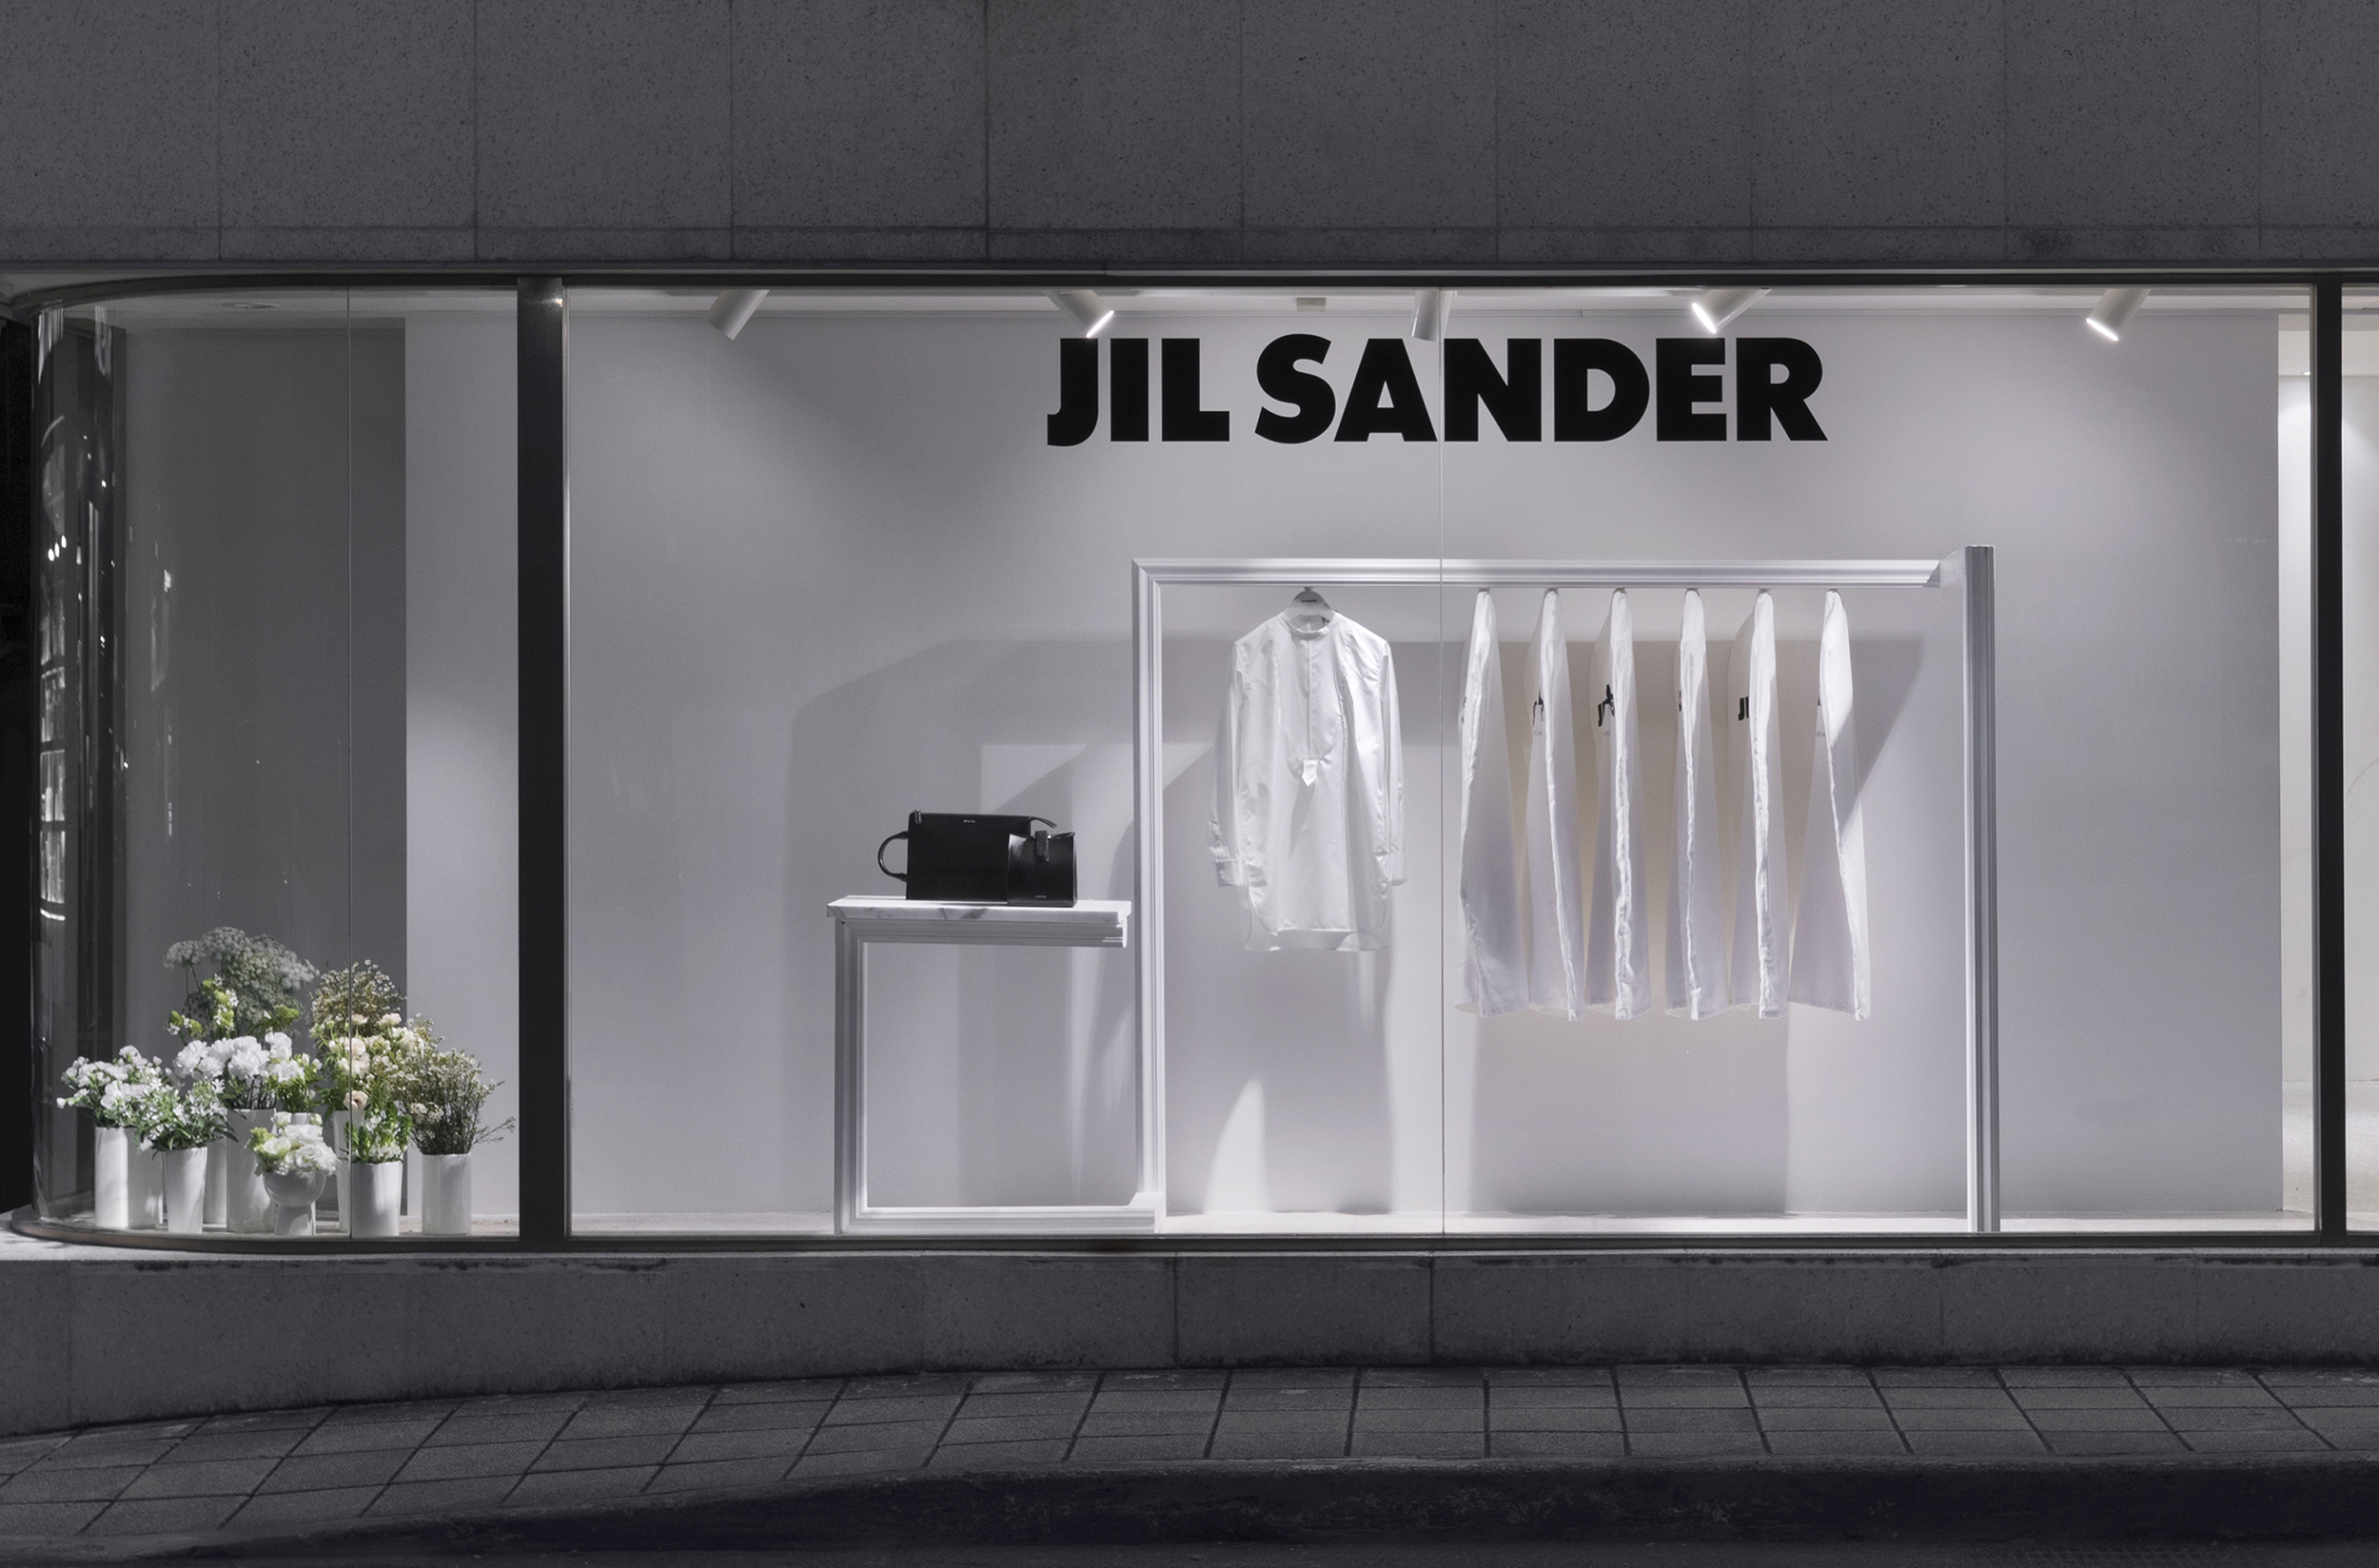 ART HAUS_JIL SANDER WINDOW DISPLAY_03.jpg